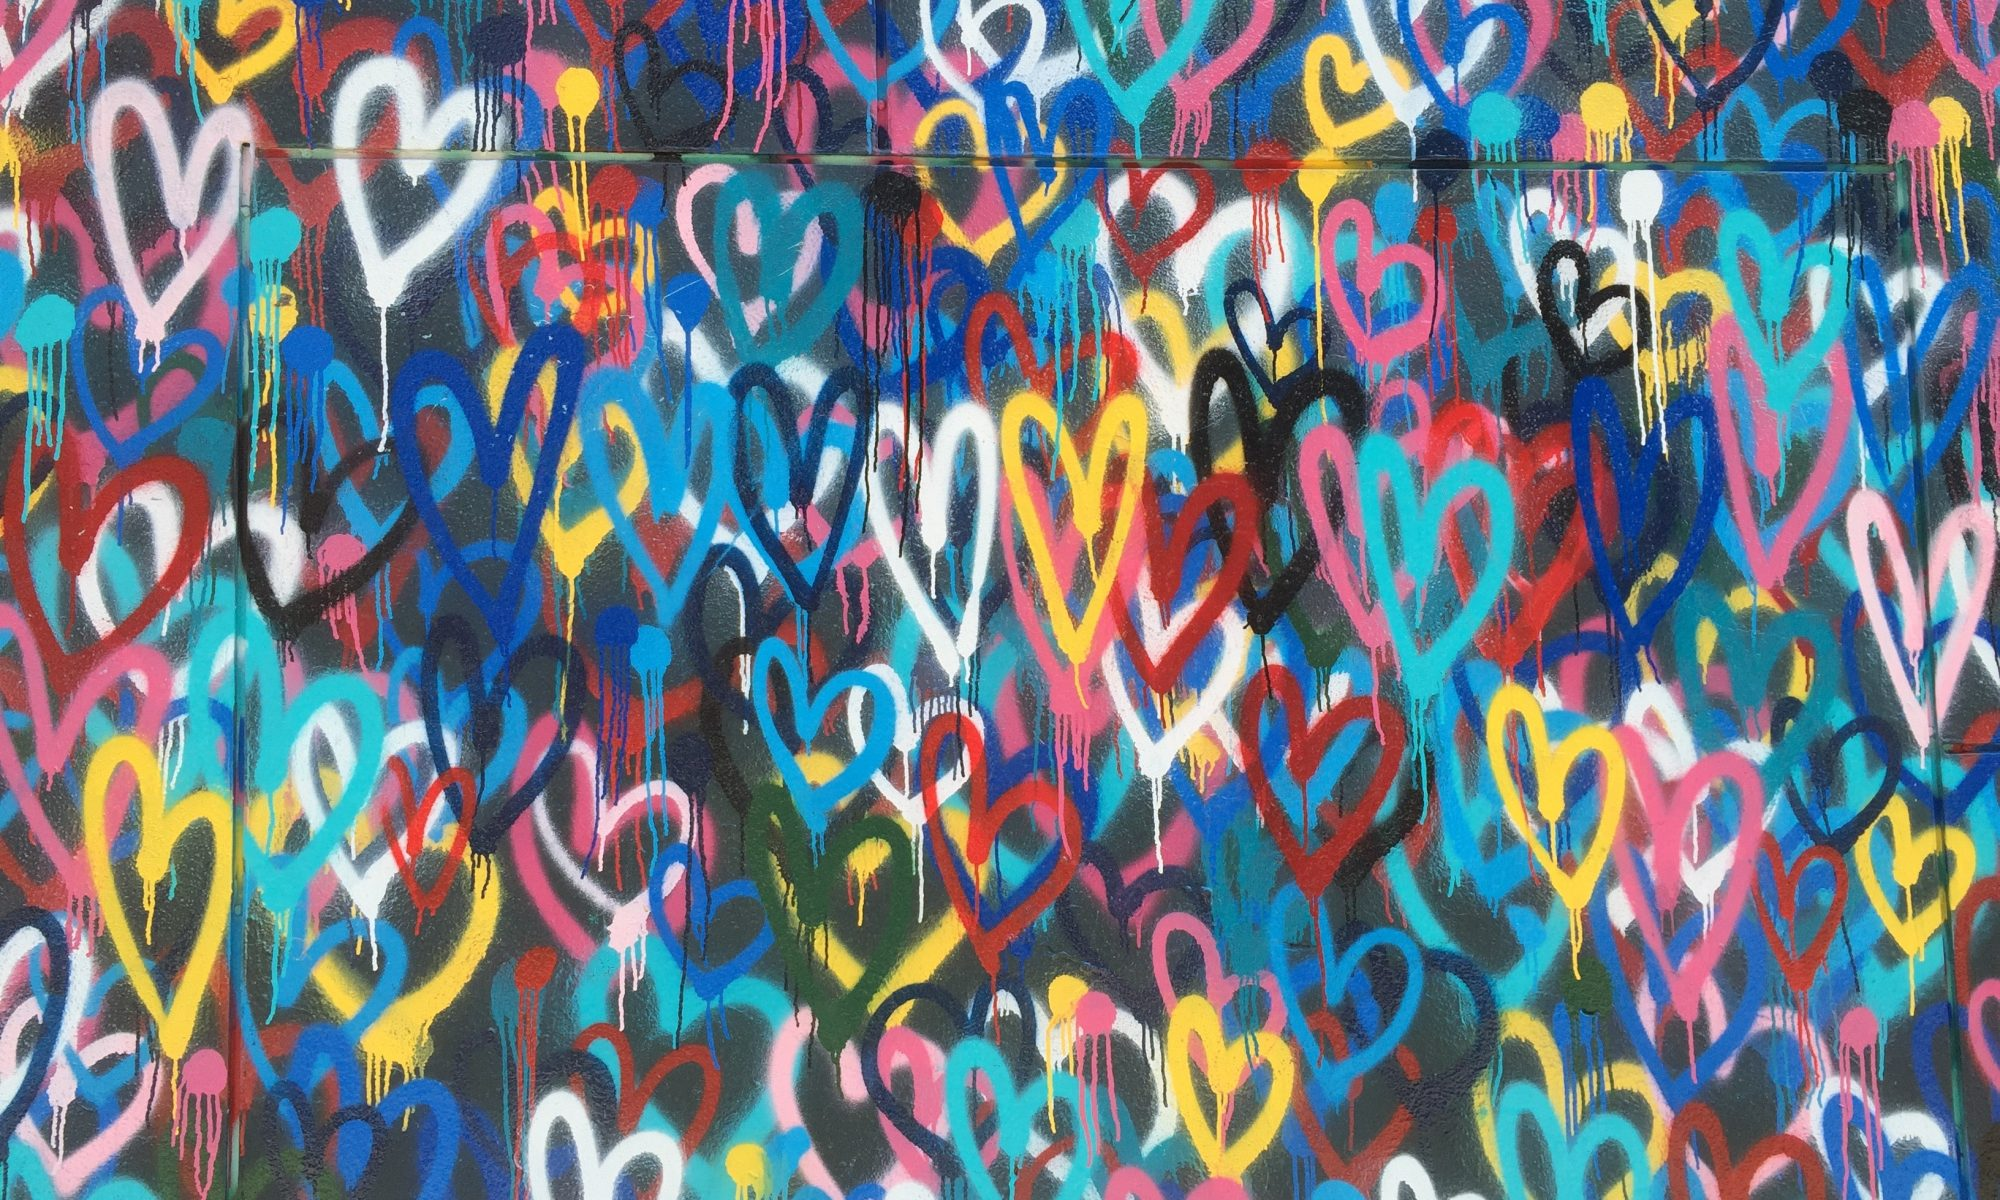 Wall of colour spray-painted hearts_Photo by Renee Fisher on Unsplash